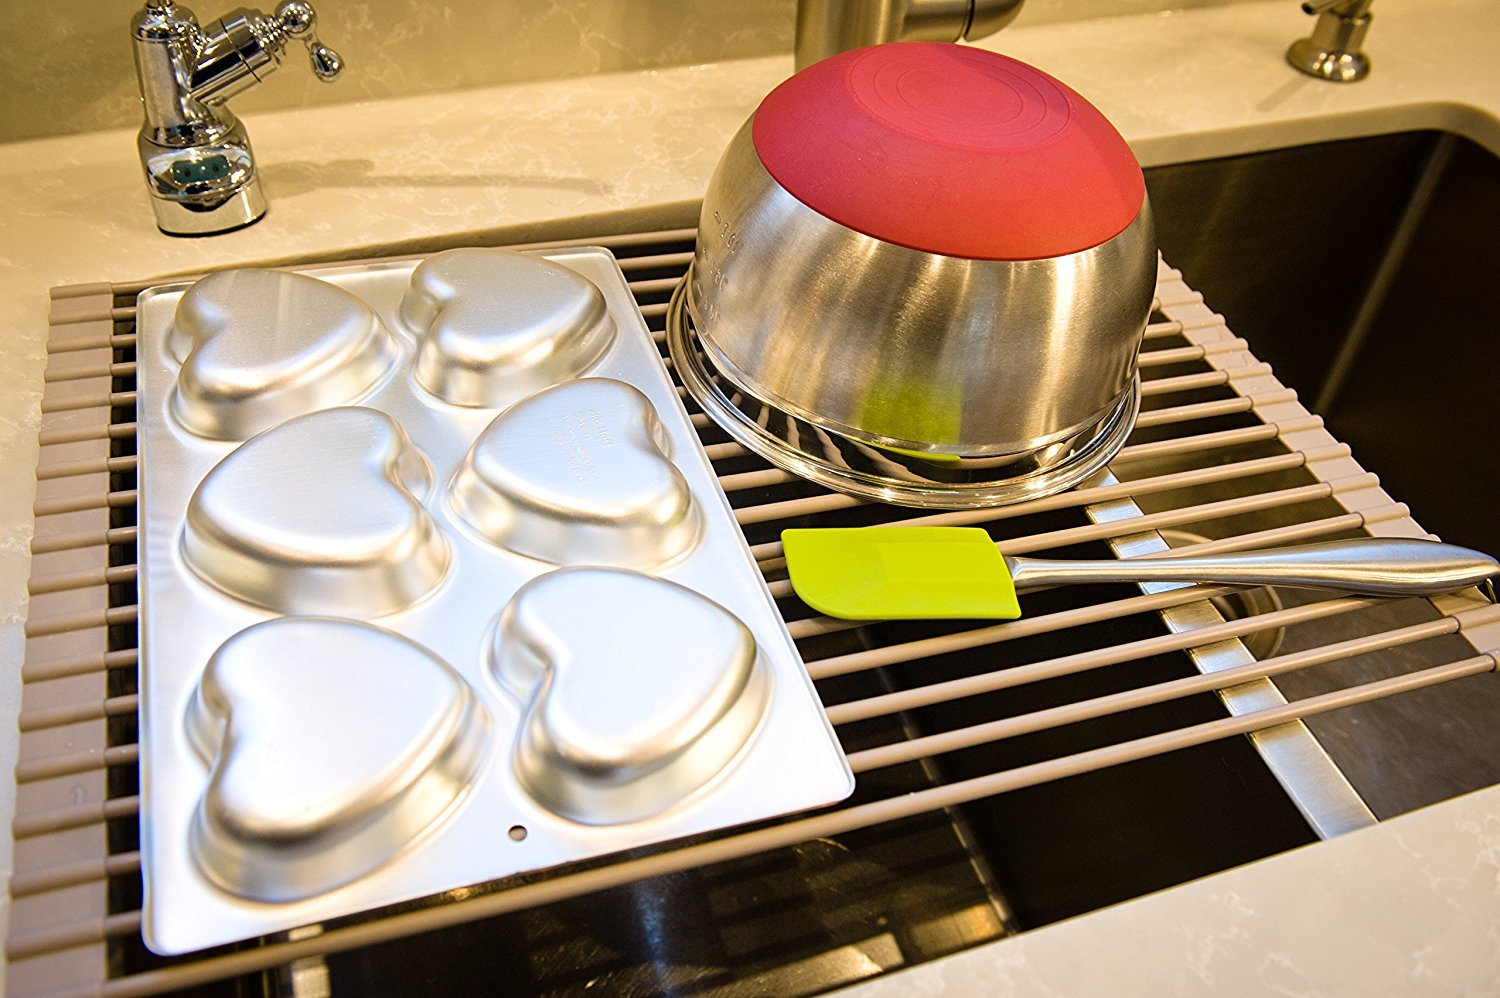 Surpahs Roll-Up Dish Drying Rack